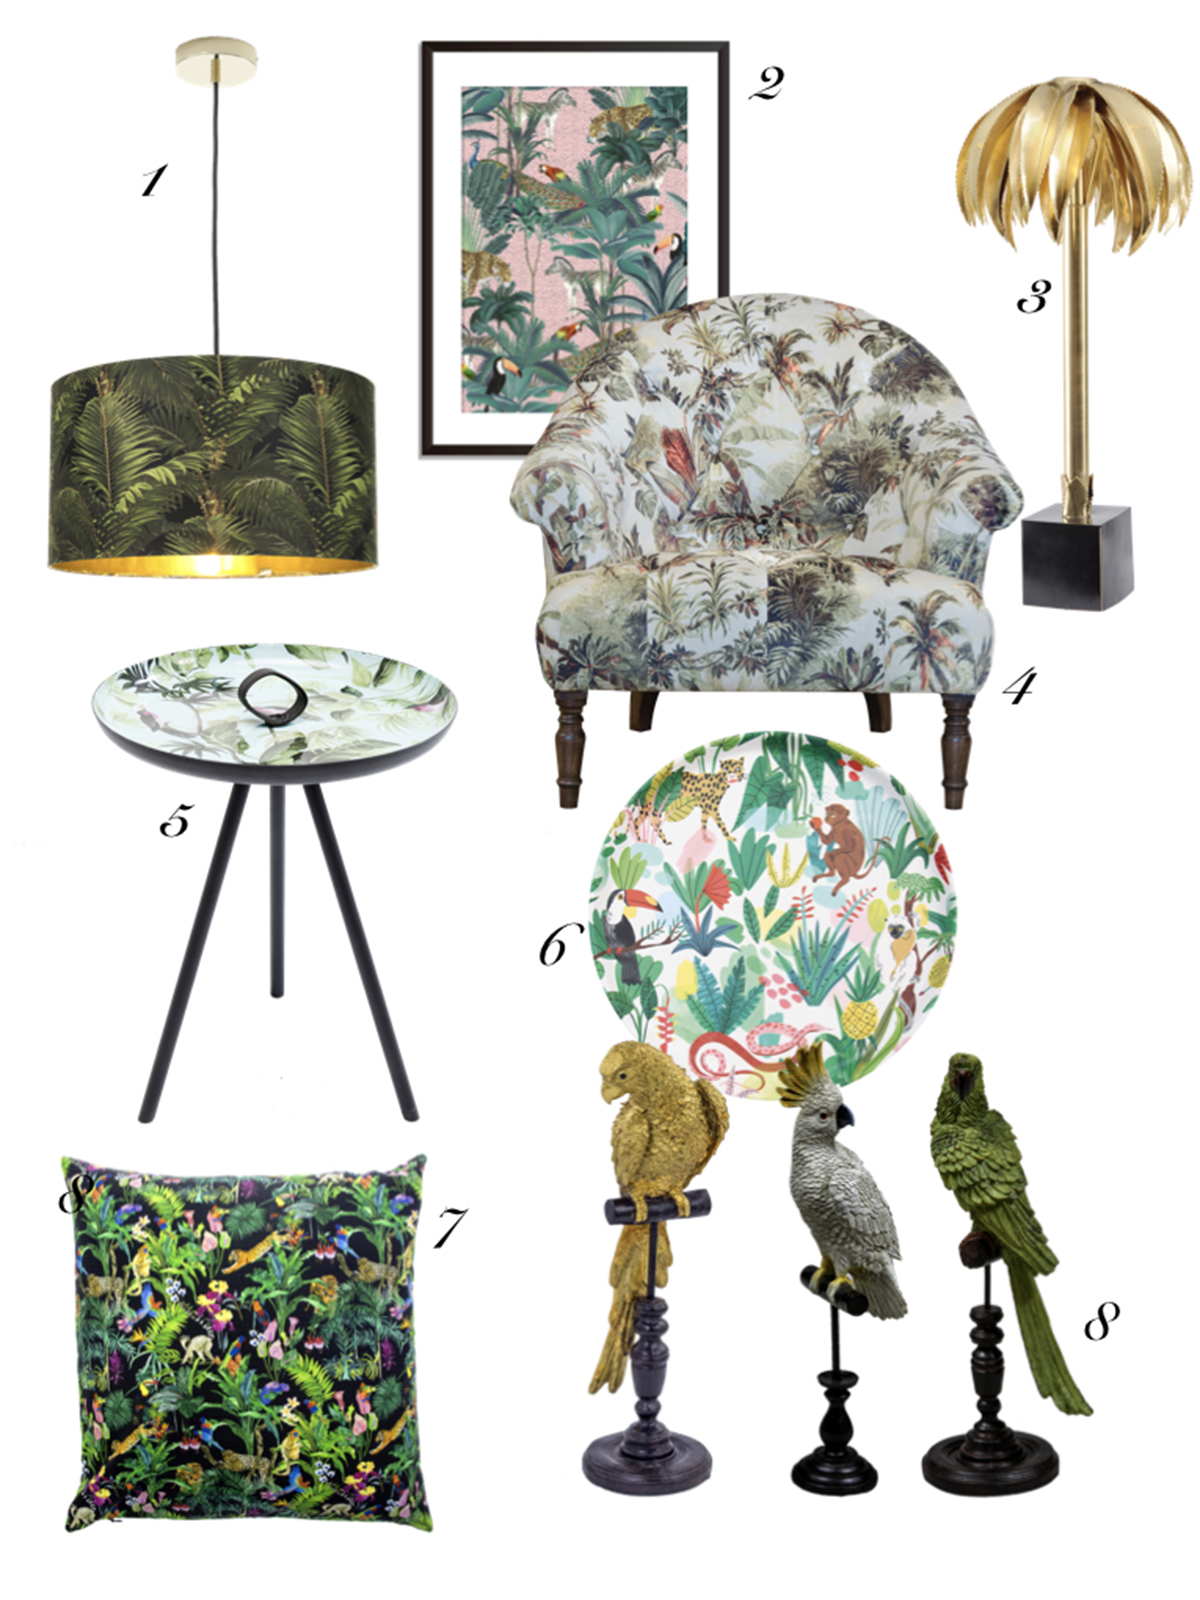 Interior designer and colour queen talk about the recent trend she's calling it jungle chintz. From soft furnishings to furniture, jungle prints and shapes can make a statement in any form